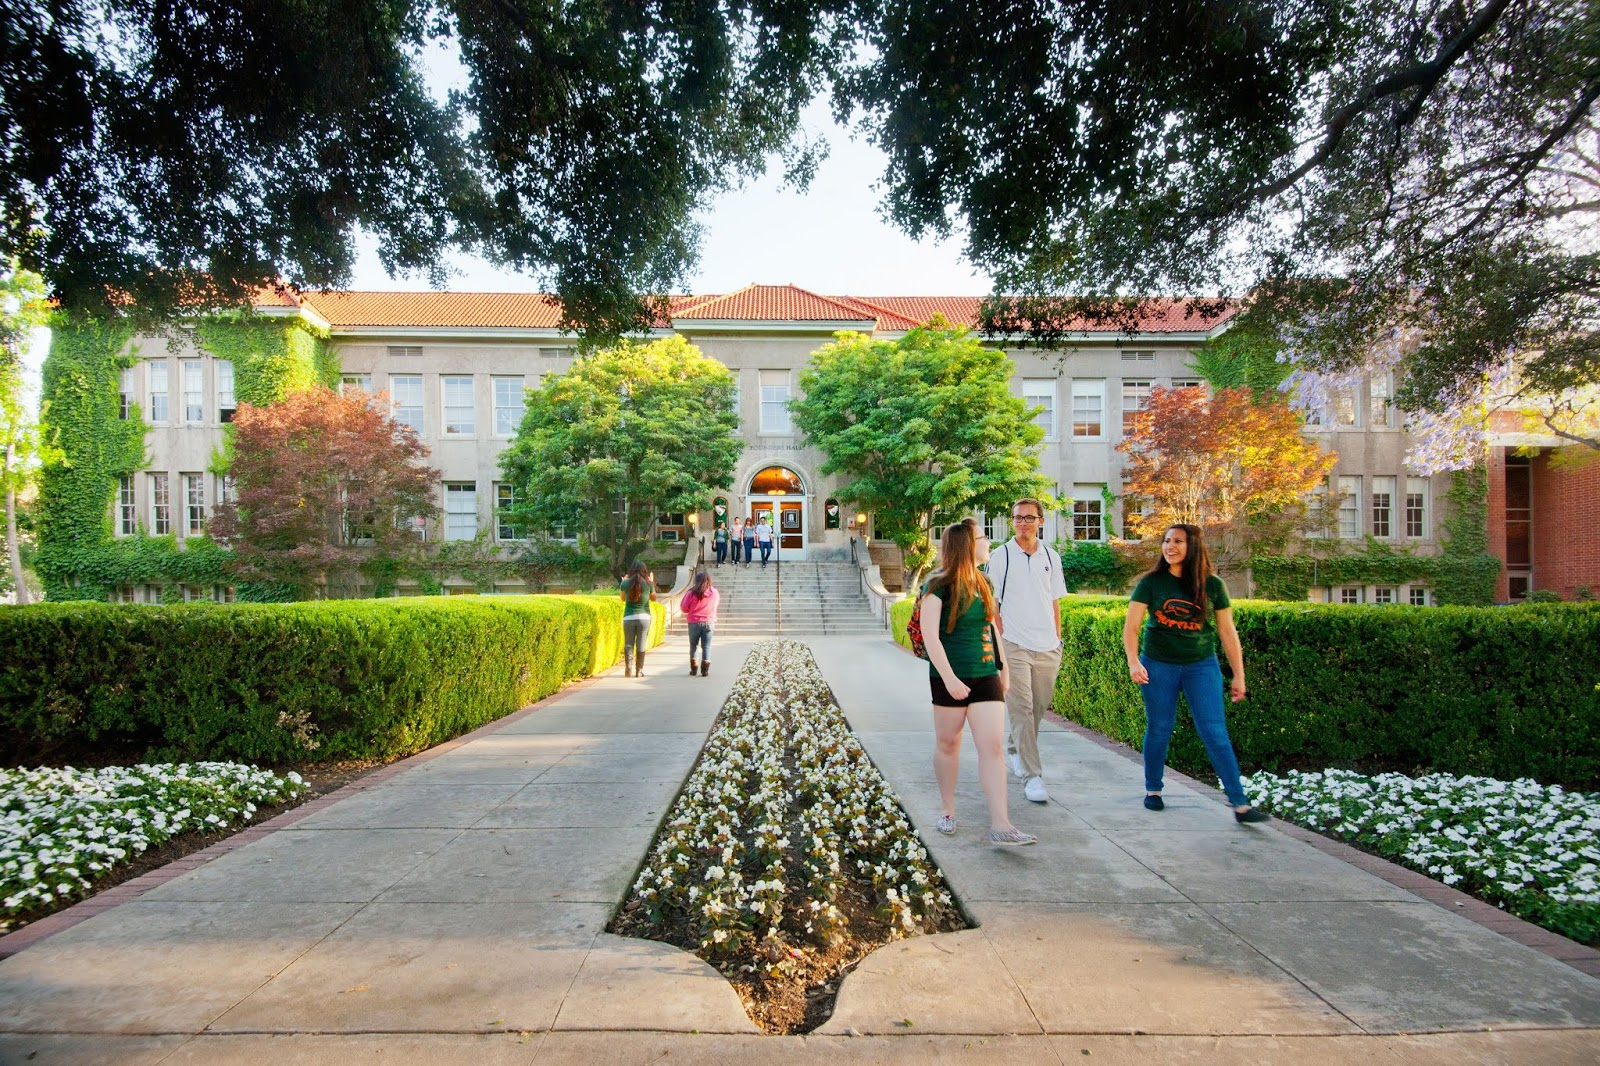 Private university in La Verne, California